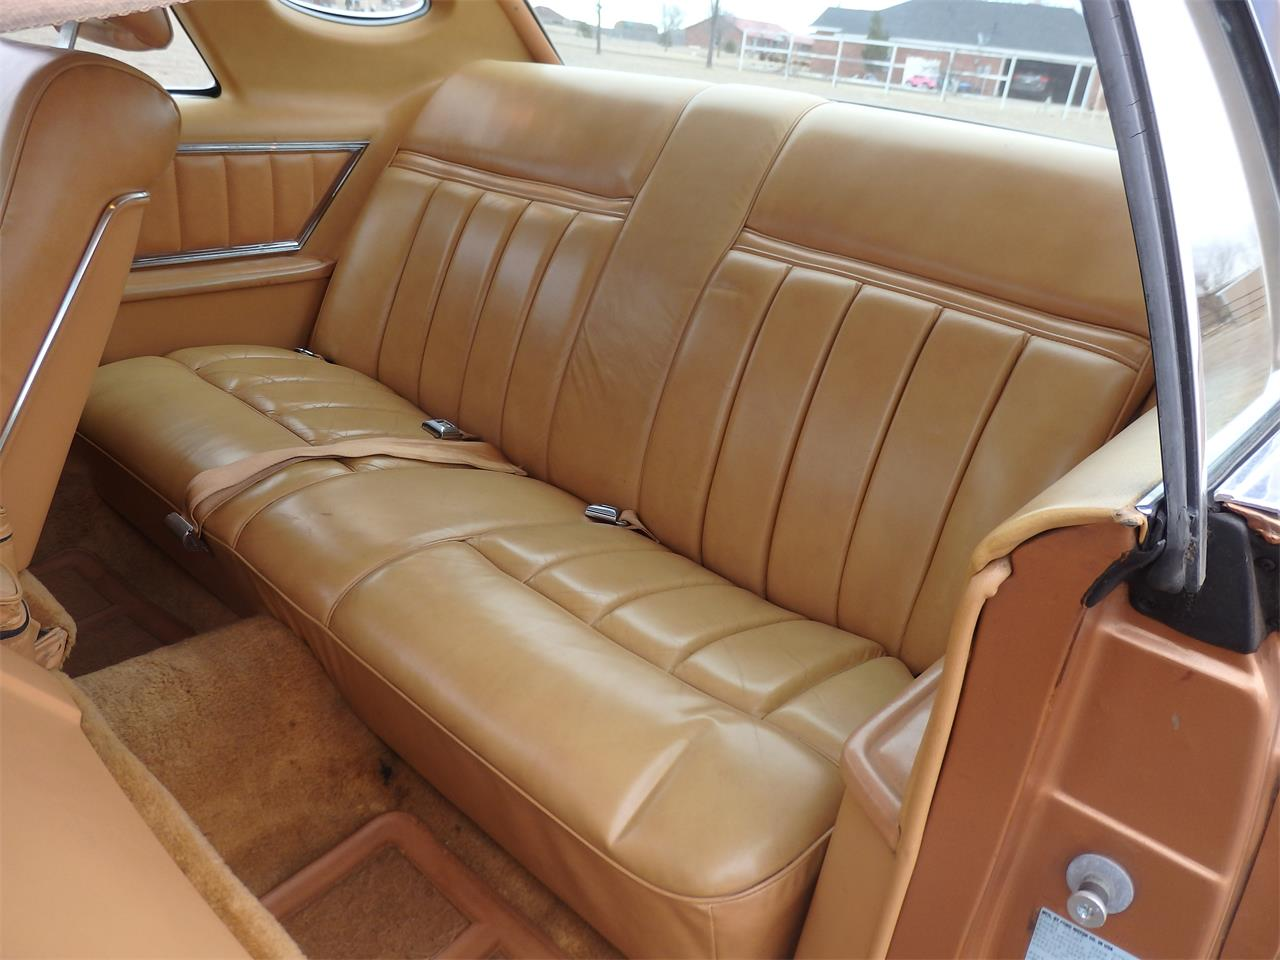 Large Picture of 1978 Lincoln Continental Mark V - $12,950.00 Offered by a Private Seller - GFR6